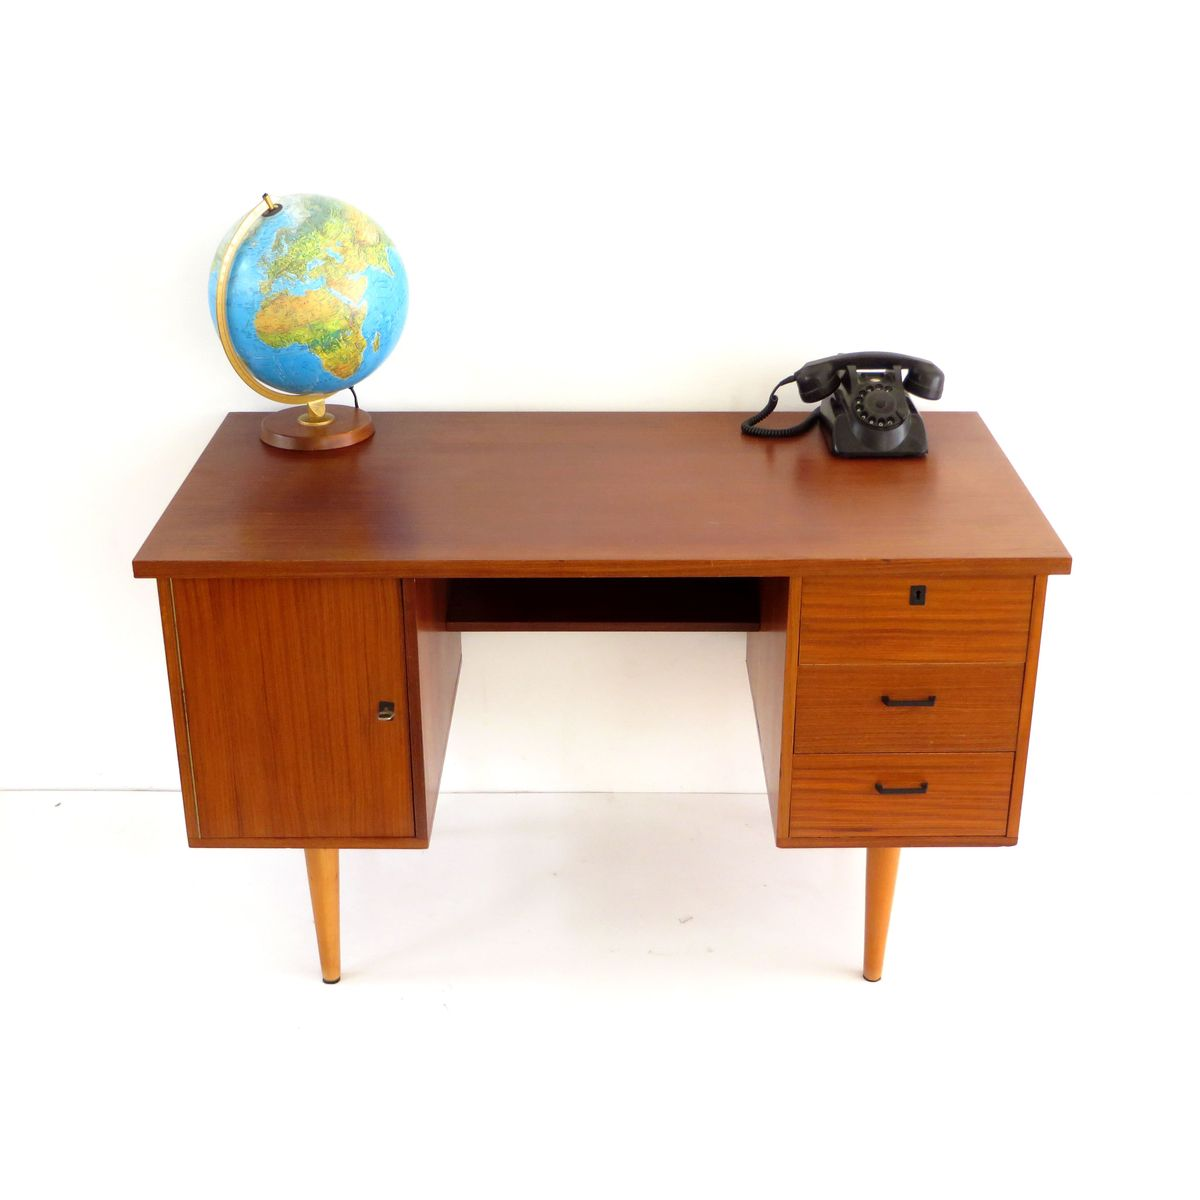 Vintage Dutch Teak Wood Writing Desk on Latest Writing Desk With Drawers